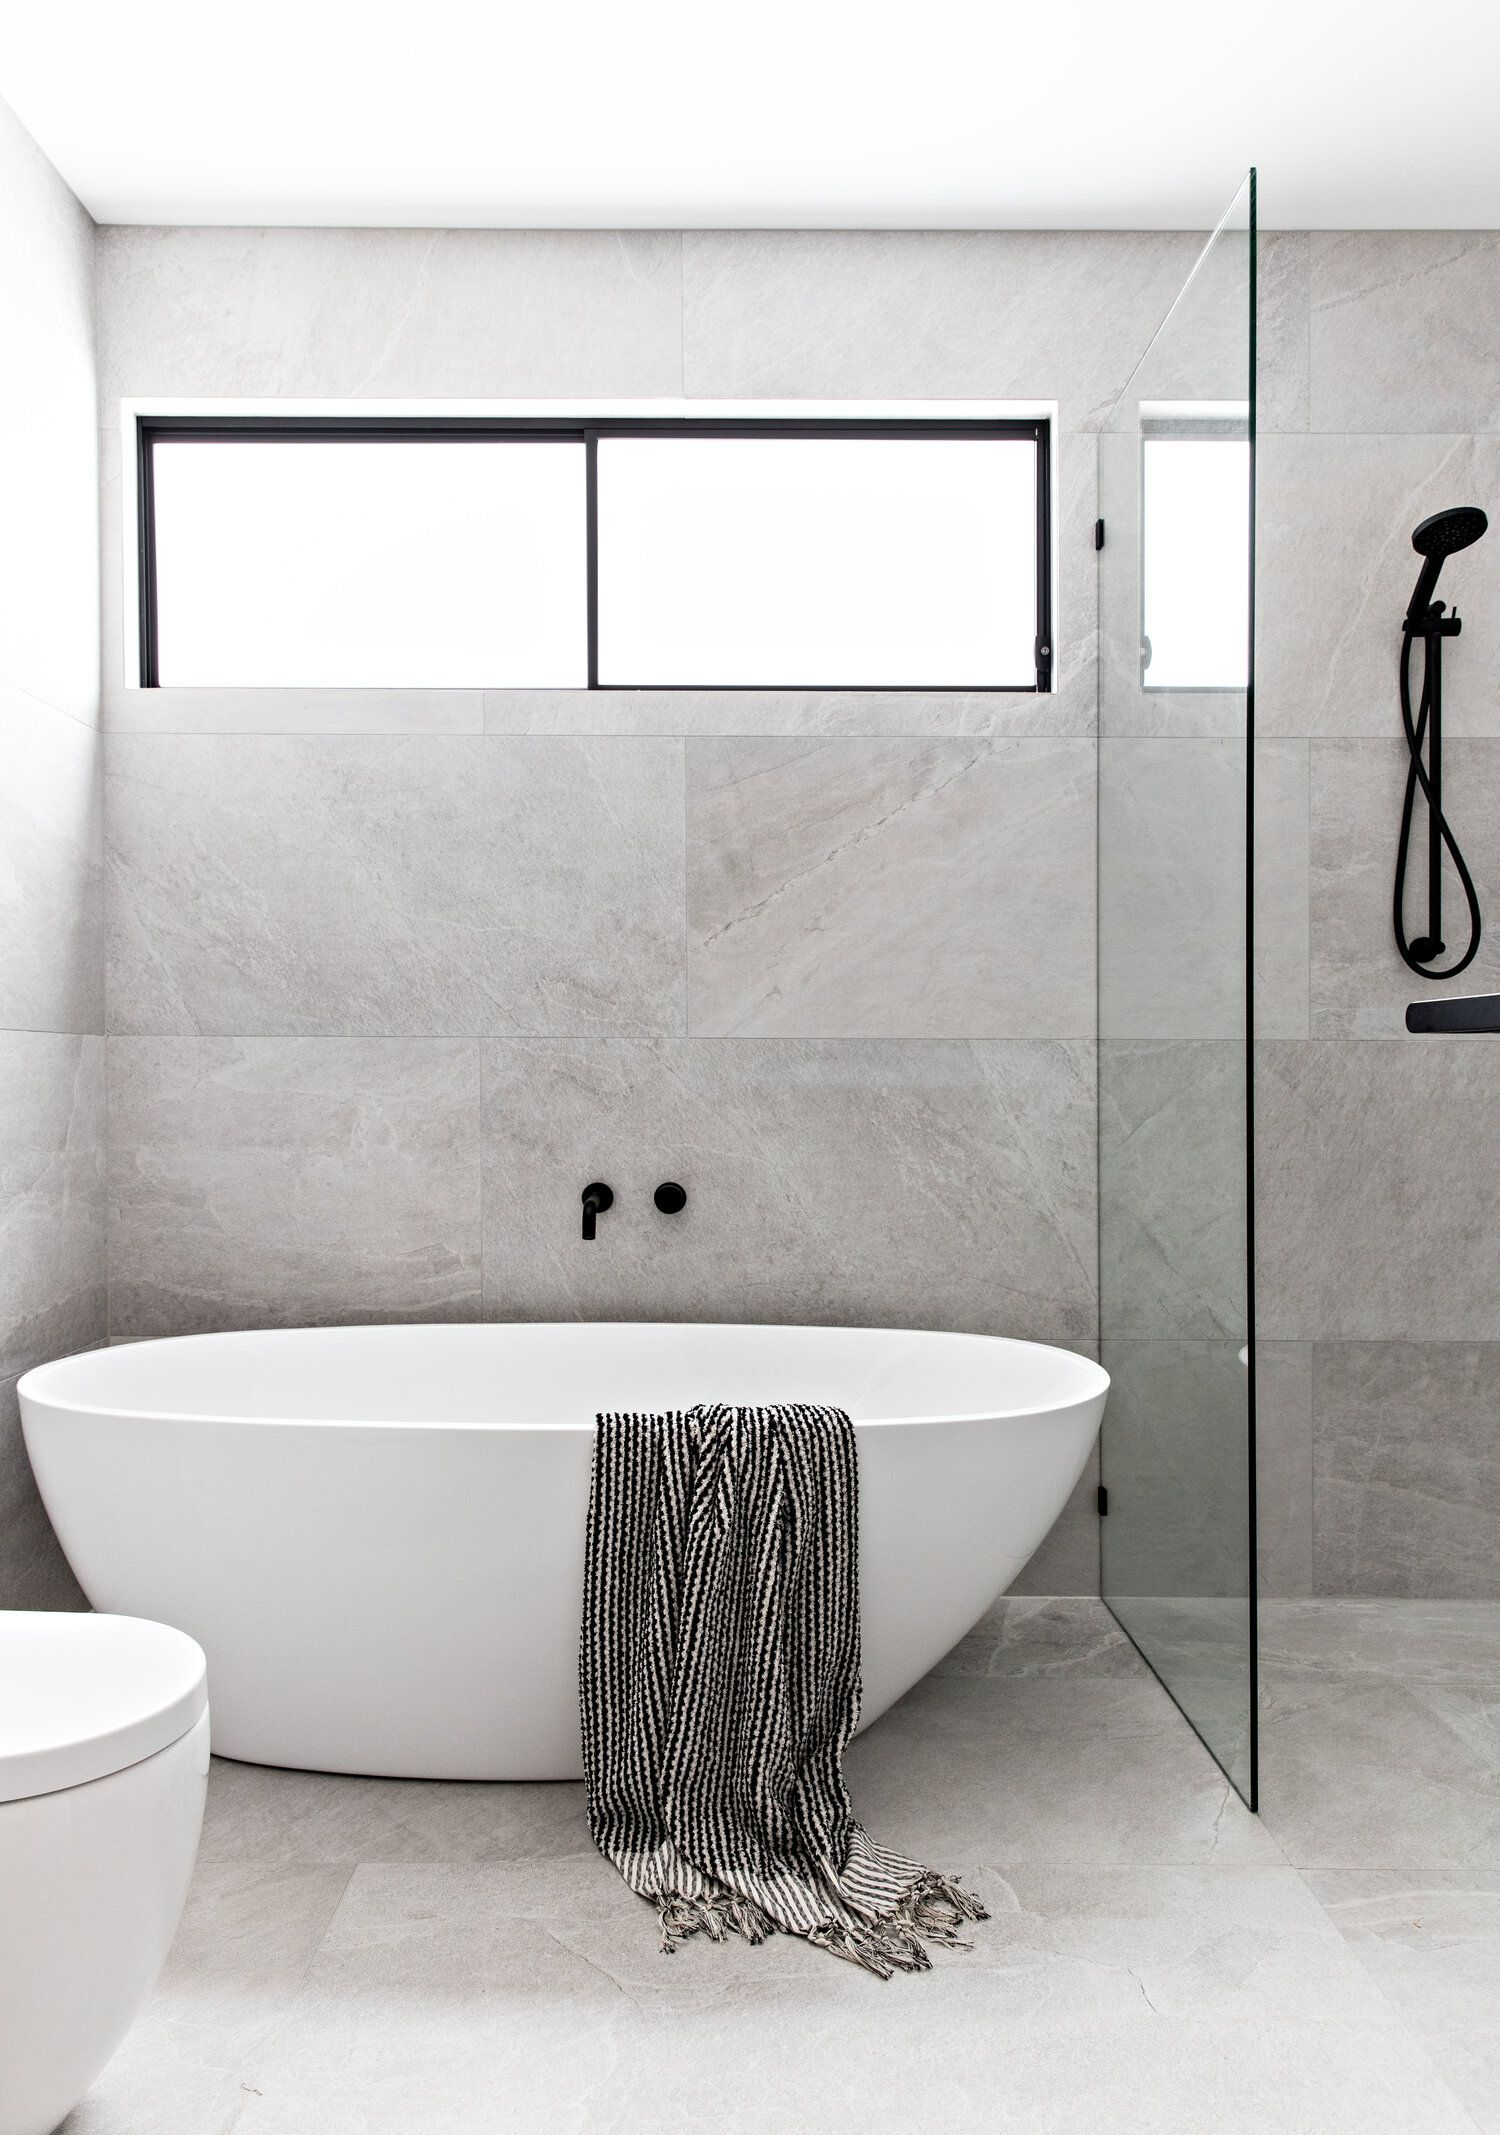 Photo of The Tile Laying Patterns you need to know  — Zephyr + Stone